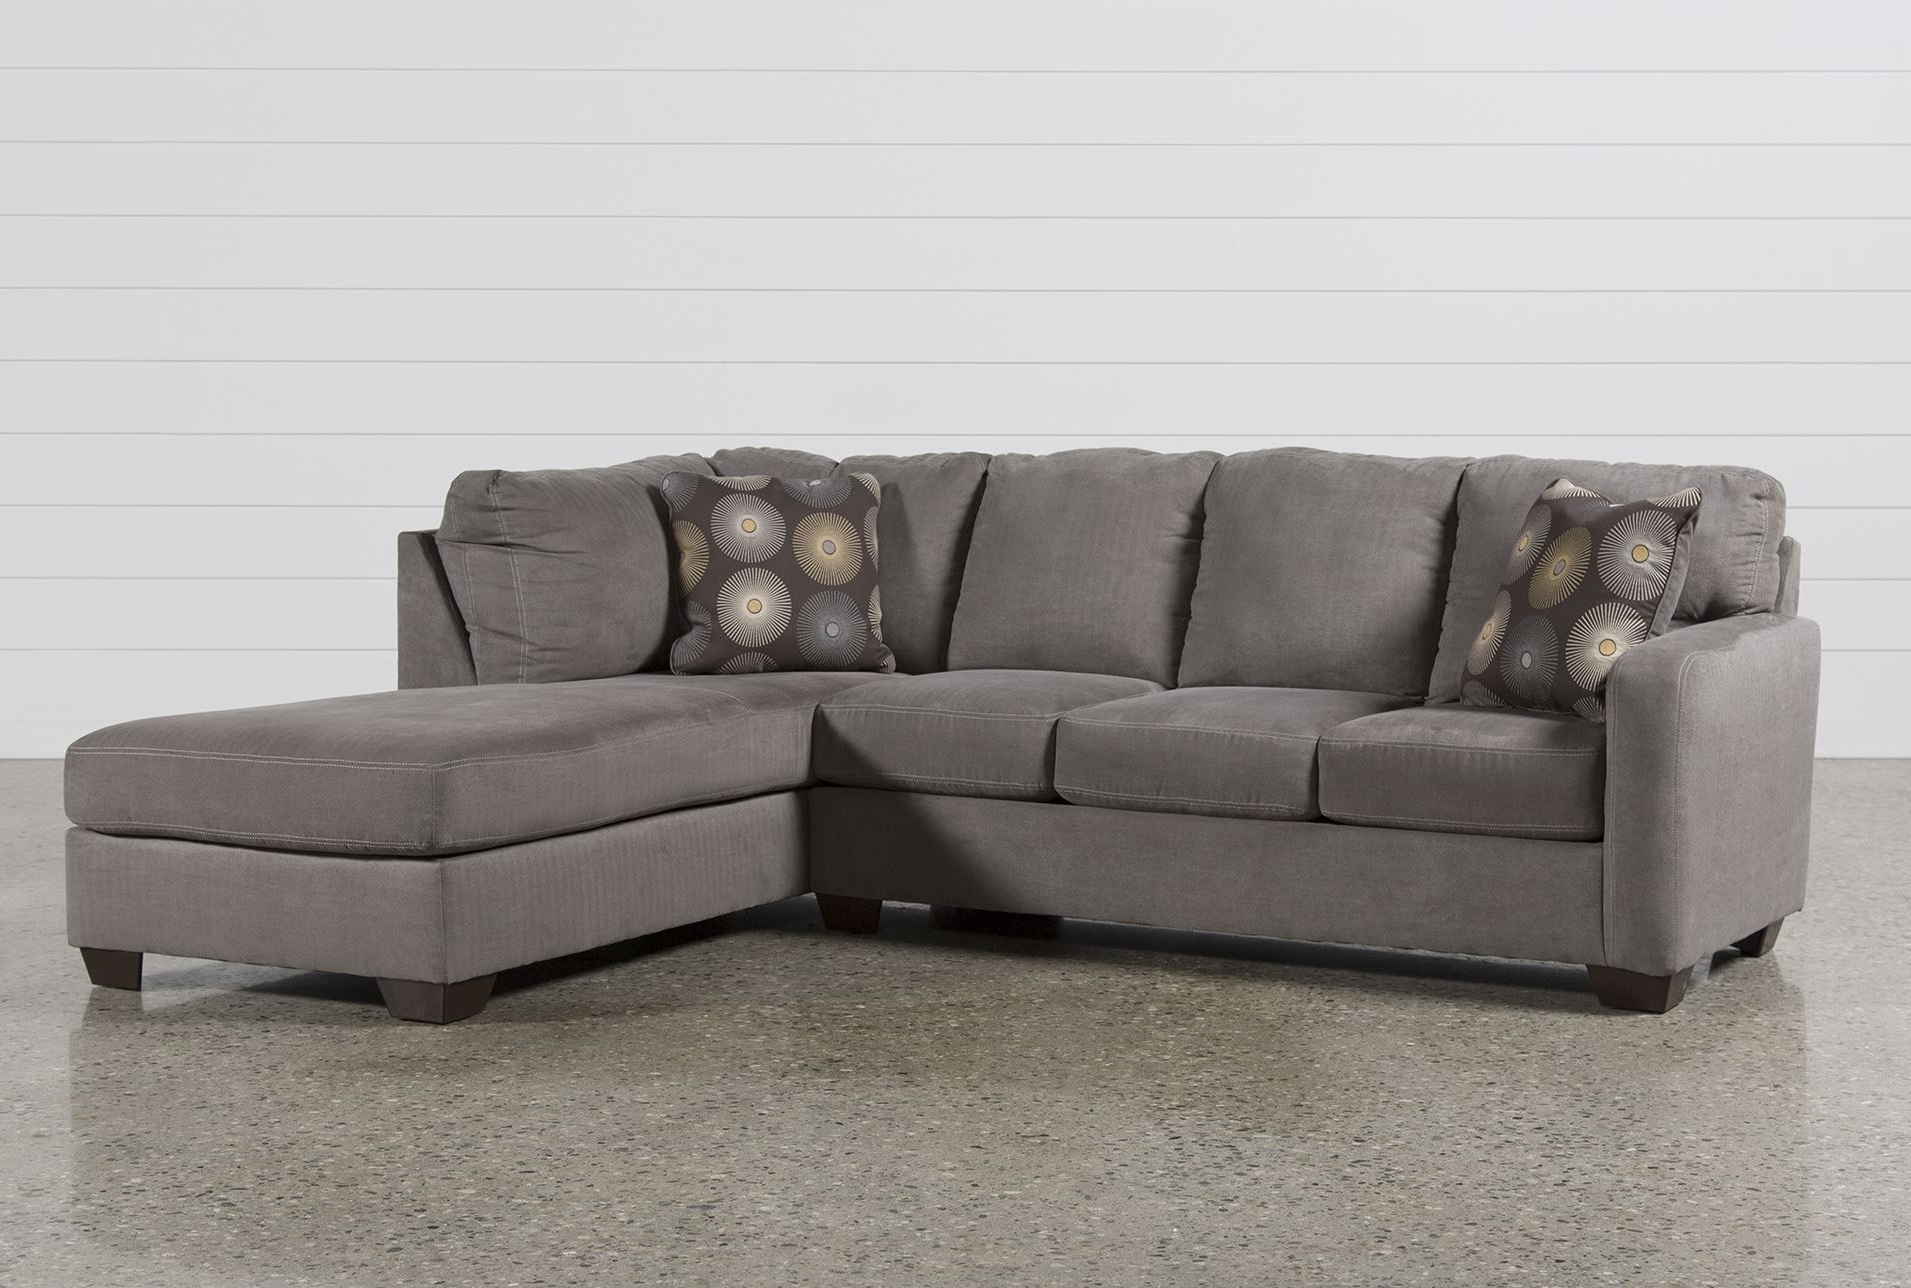 Best 2 Piece Sectional Sofa 23 For Your Living Room Sofa Ideas Throughout Recent 2 Piece Sectional Sofas With Chaise (View 15 of 15)